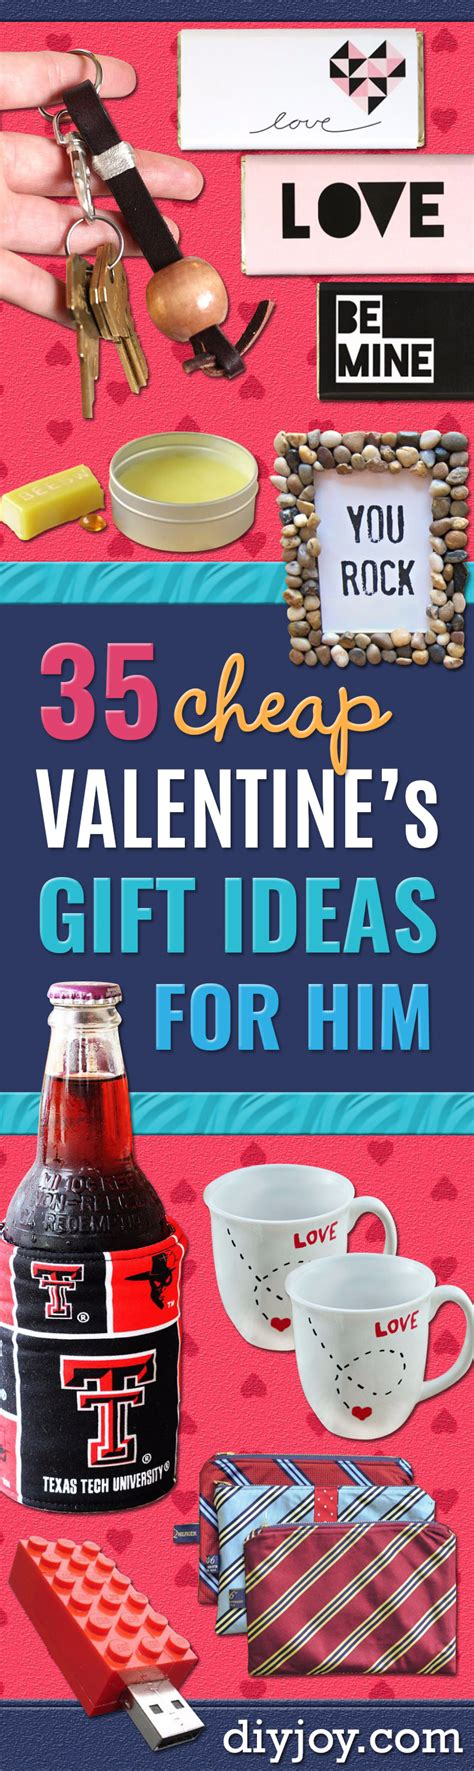 cheap valentines ideas for him 35 cheap s gift ideas for him diy